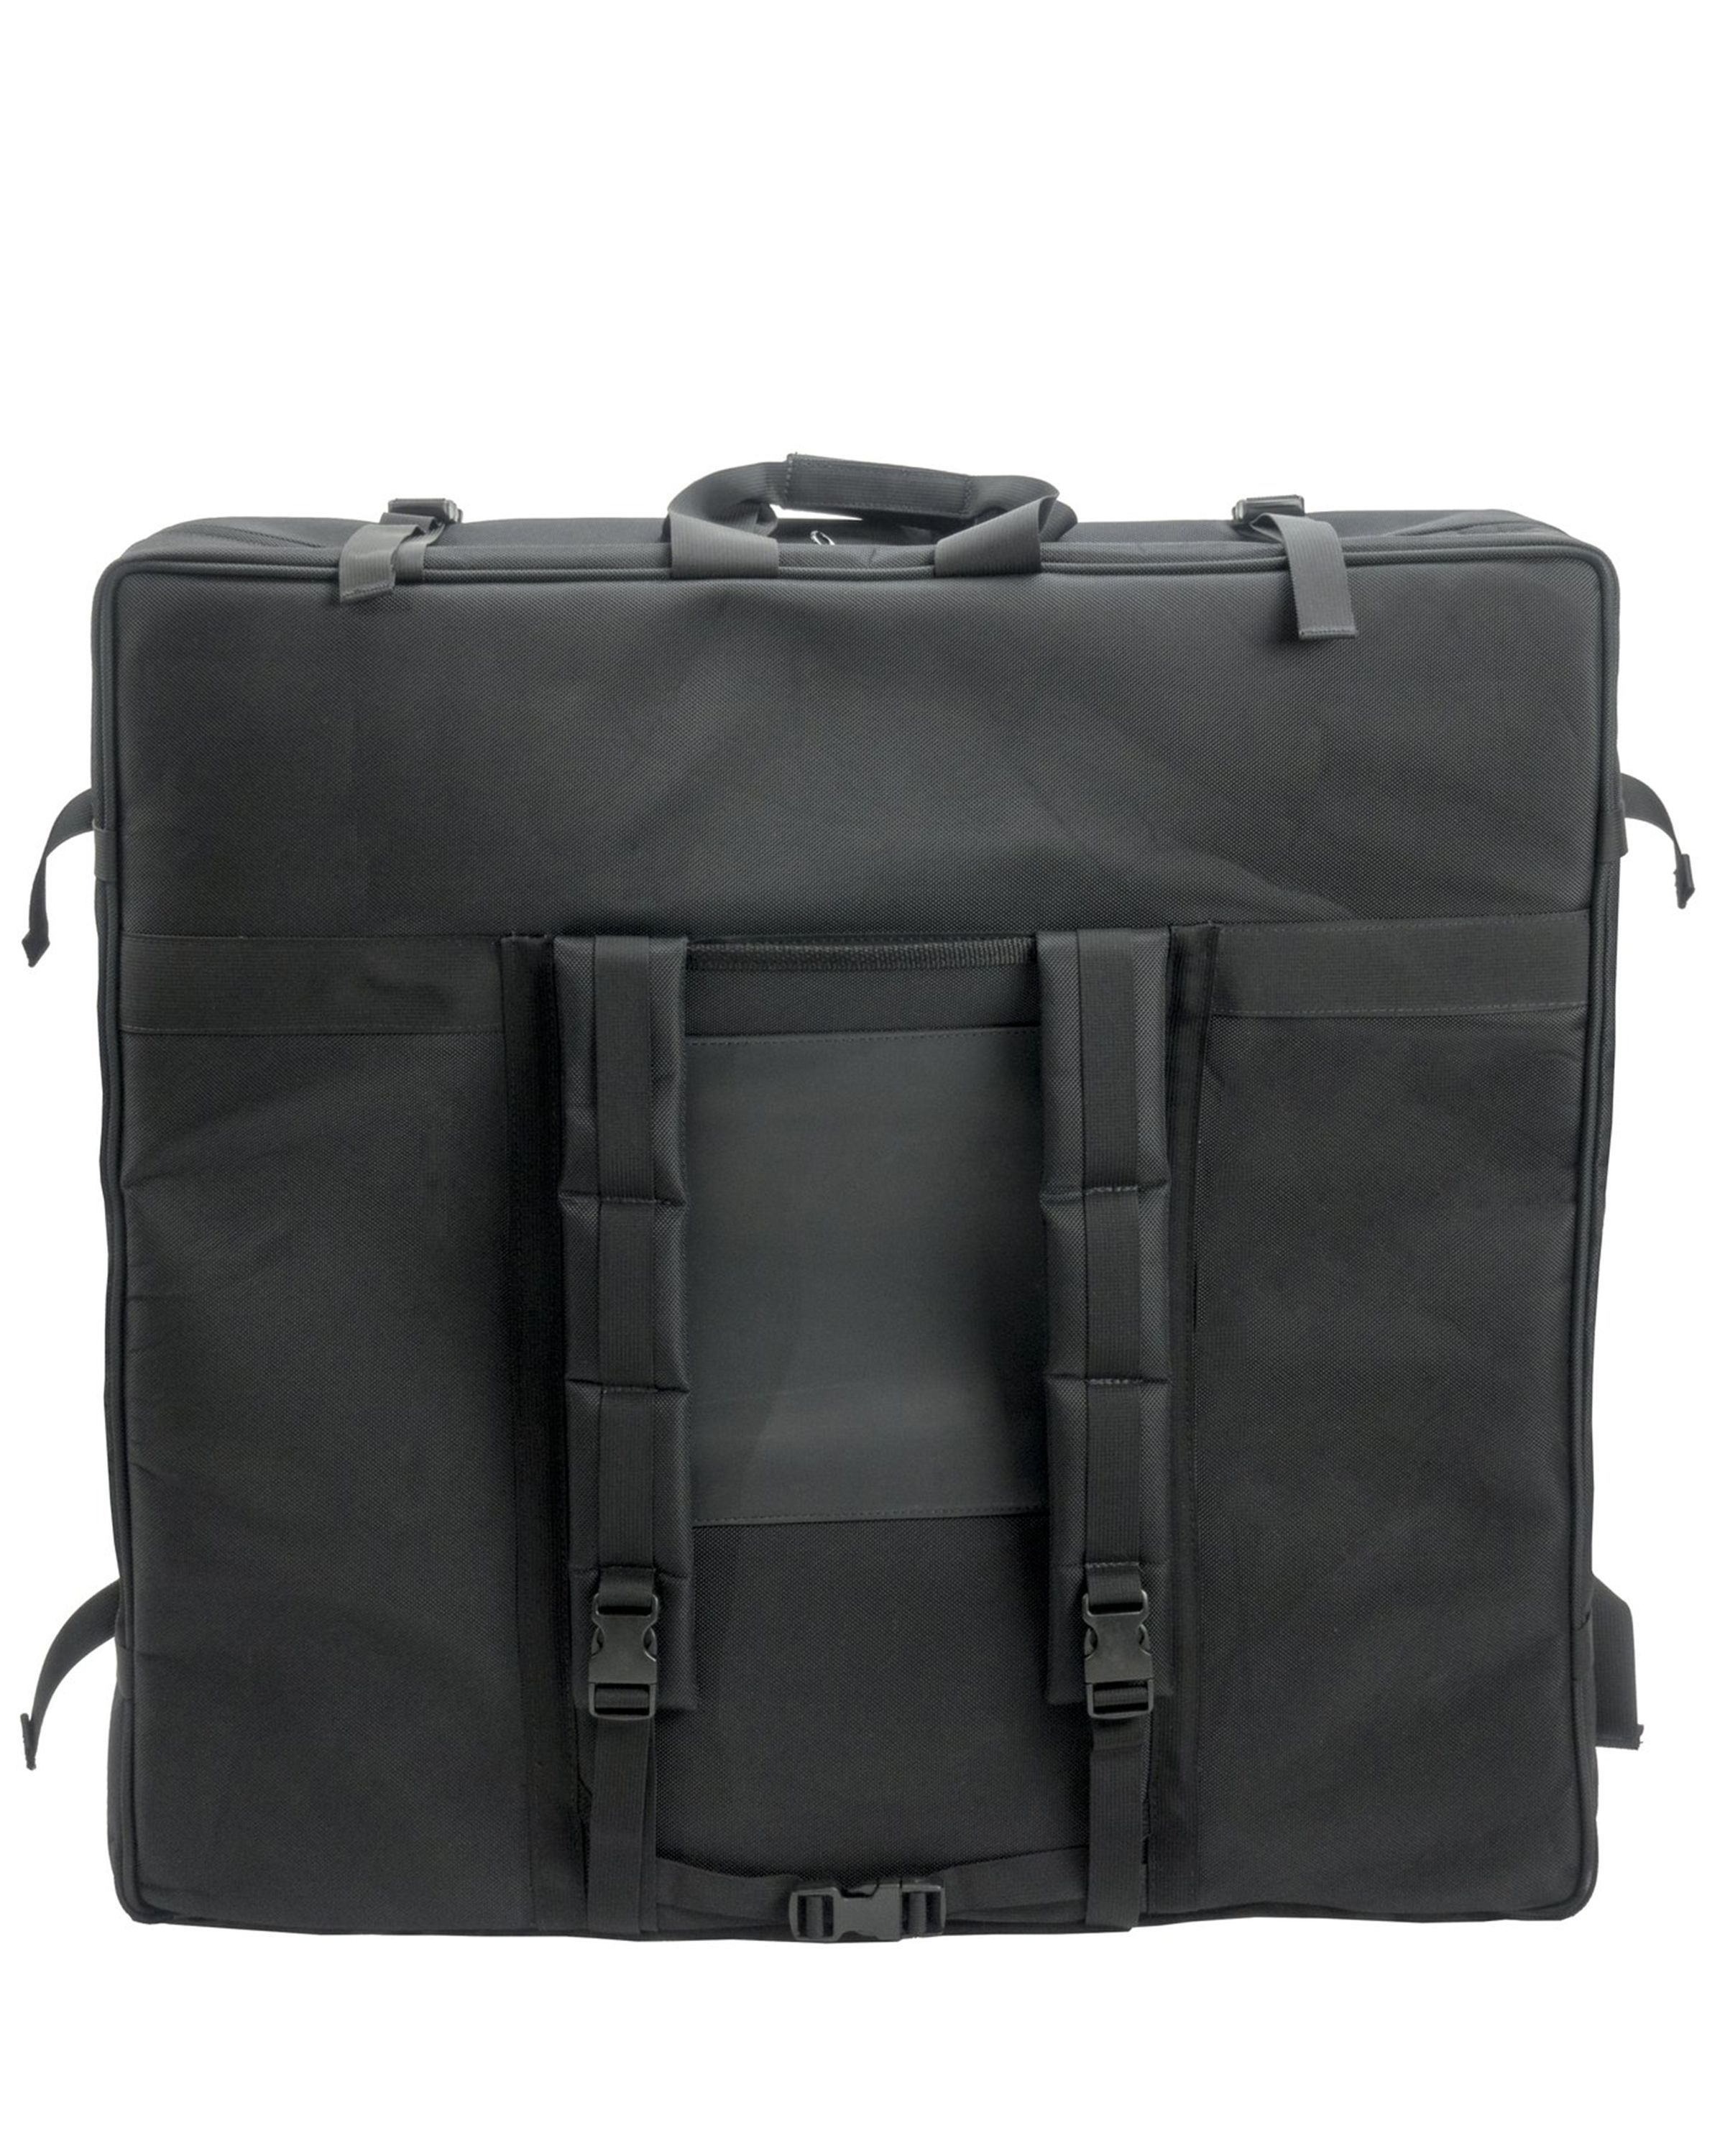 Best Travel Cases For Bikes Bike Bags And Bo 2019